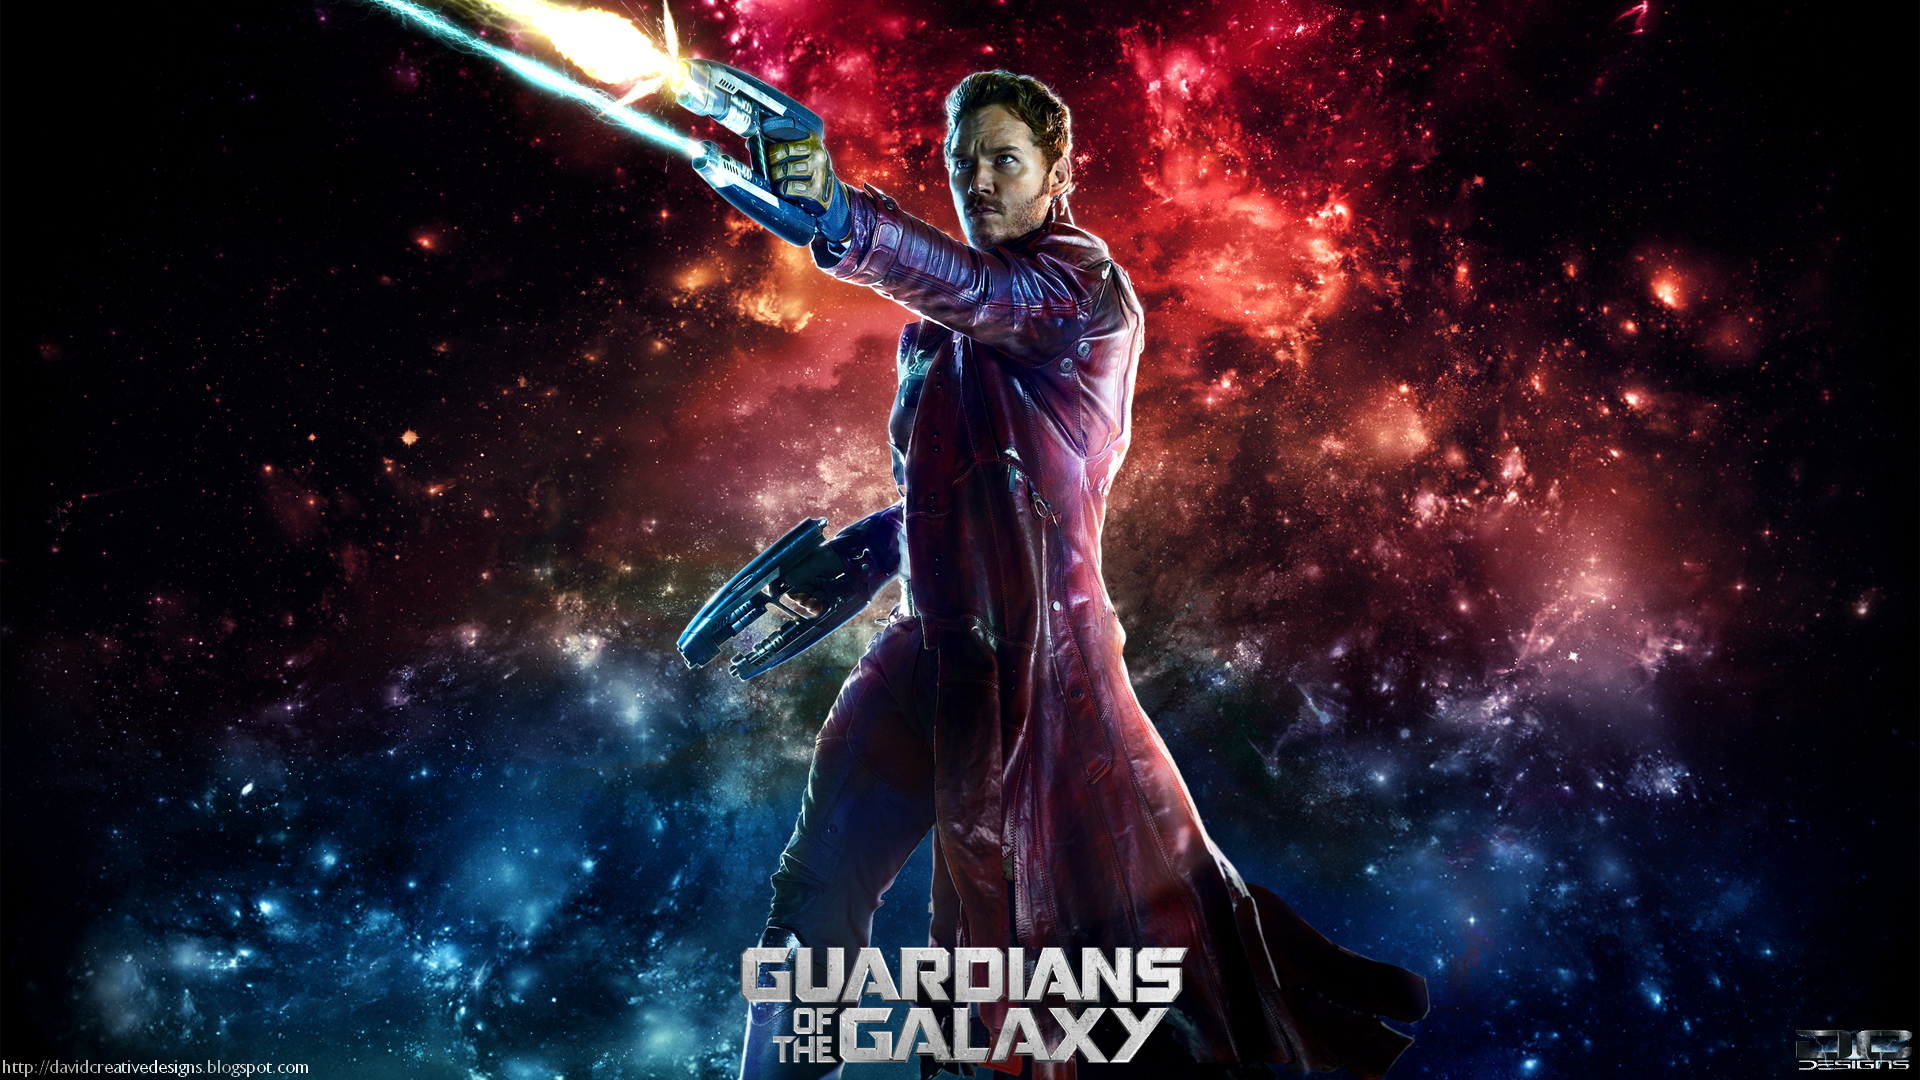 Good Wallpaper Movie Guardians The Galaxy - thumb-1920-569869  Photograph_659016.png